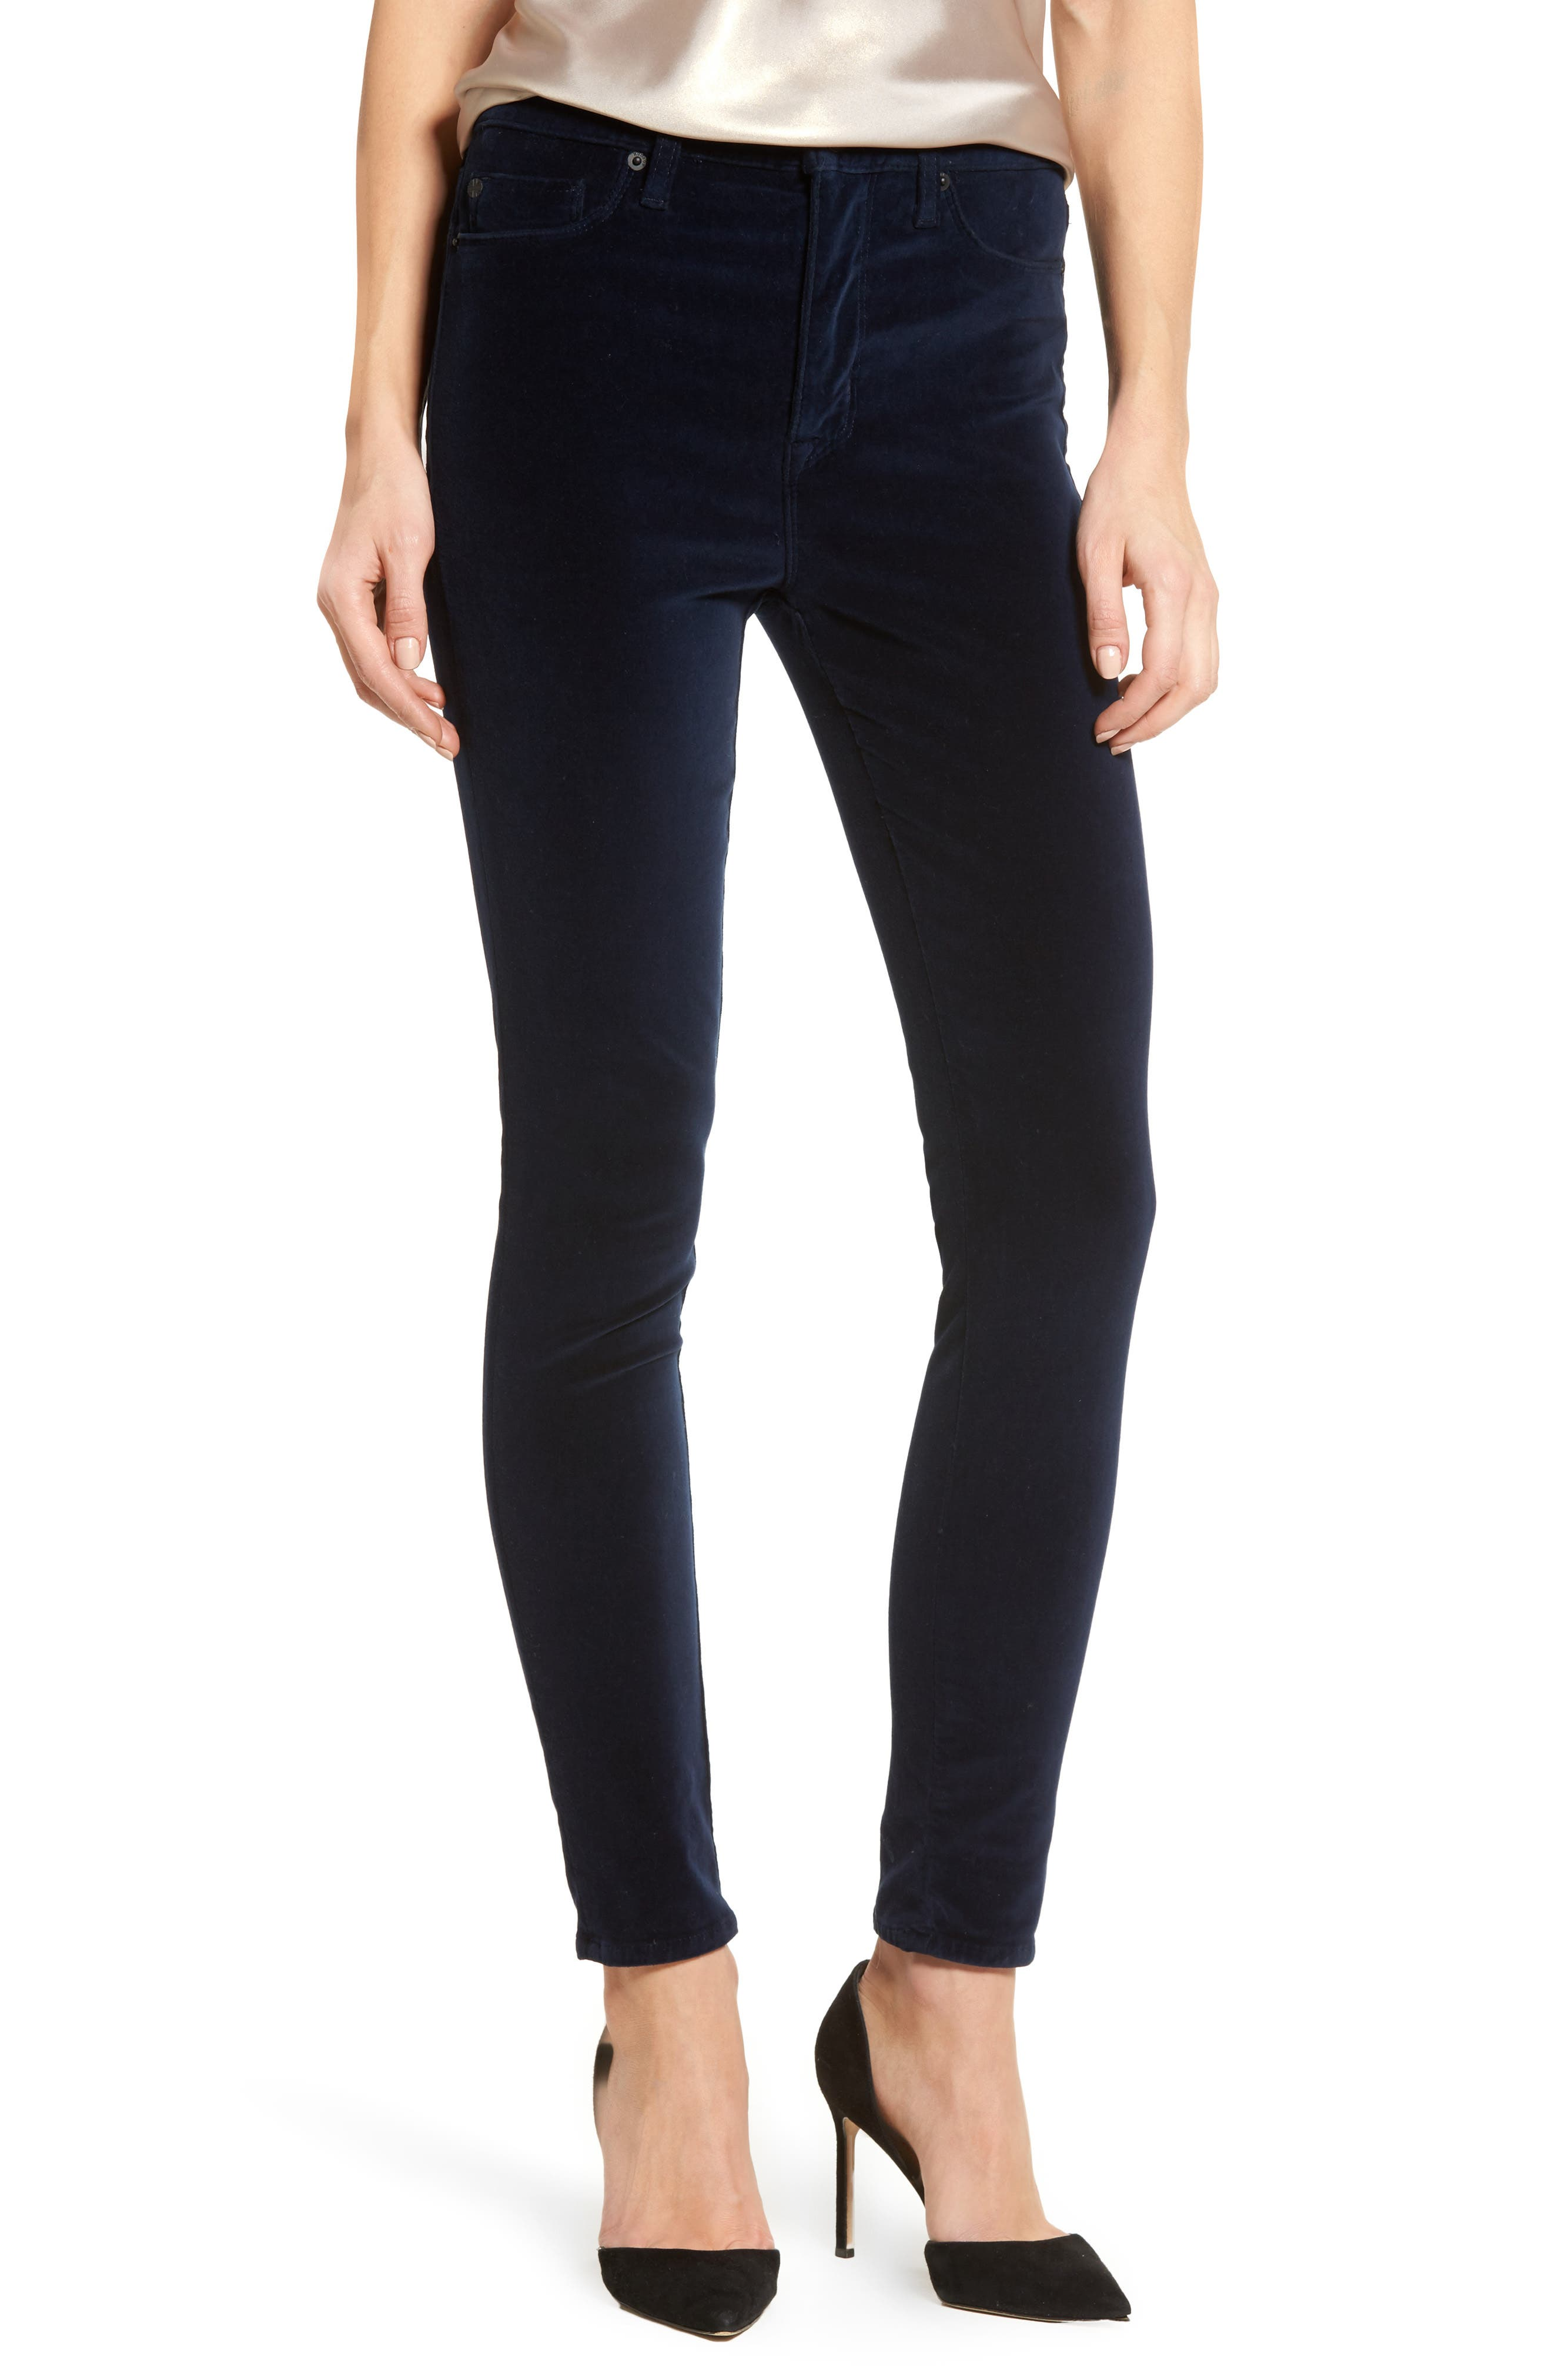 Alternate Image 1 Selected - Hudson Jeans Barbara High Waist Ankle Super Skinny Jeans